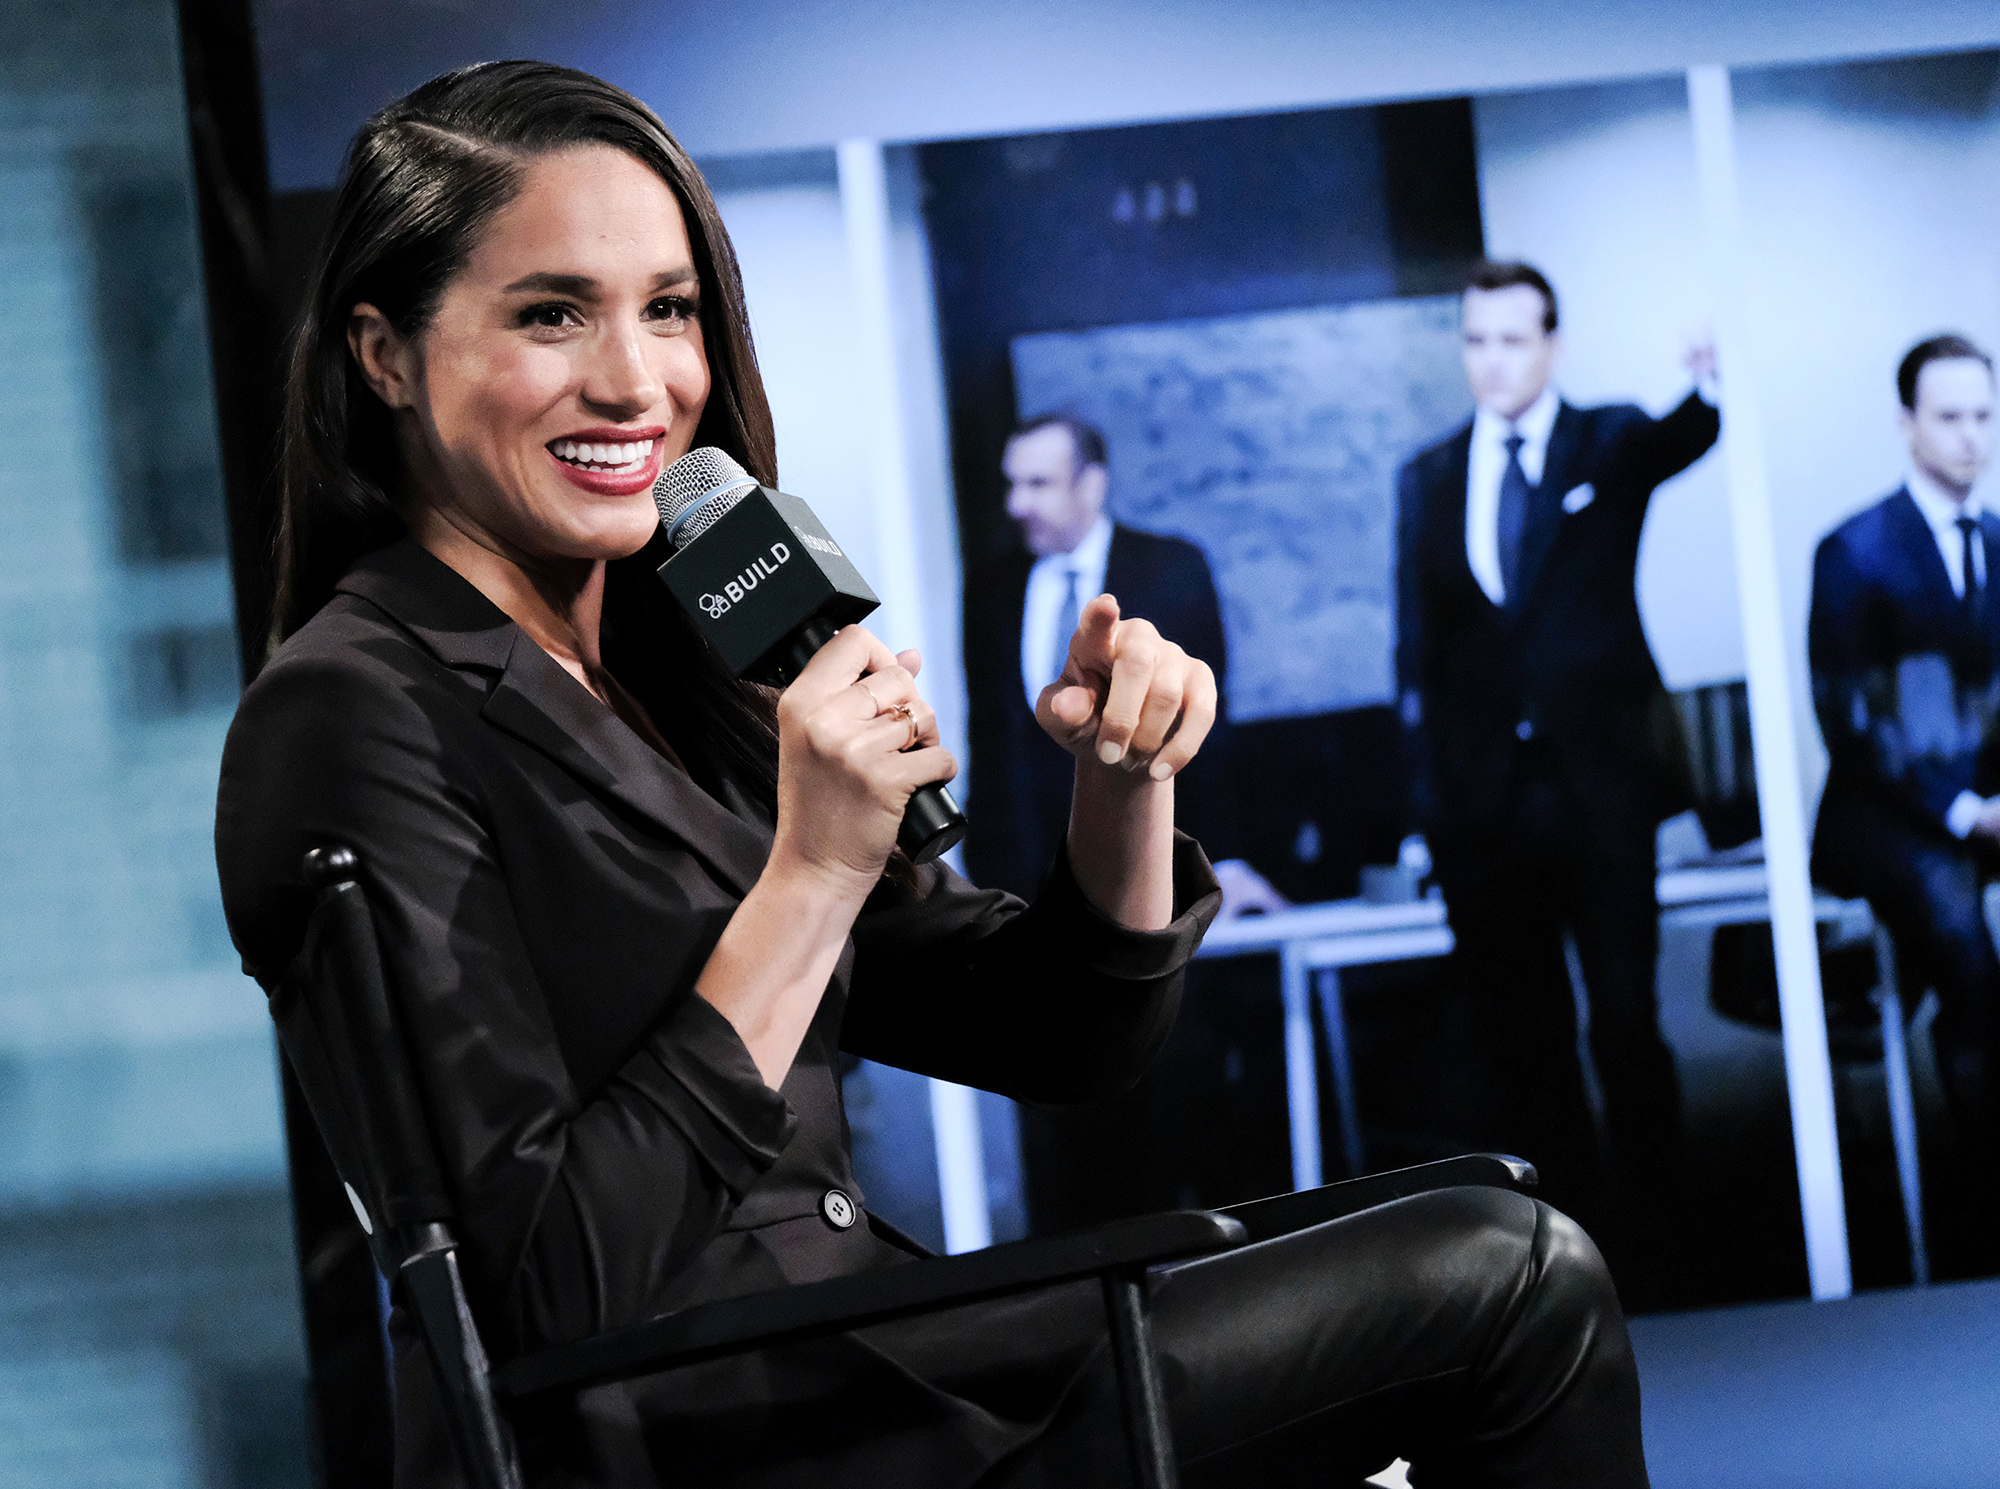 <div class='meta'><div class='origin-logo' data-origin='AP'></div><span class='caption-text' data-credit='Evan Agostini/Invision/AP'>Actress Meghan Markle participates in AOL's BUILD Speaker Series to discuss her role on the television show, &#34;Suits&#34;, at AOL Studios on Thursday, March 17, 2016, in New York.</span></div>